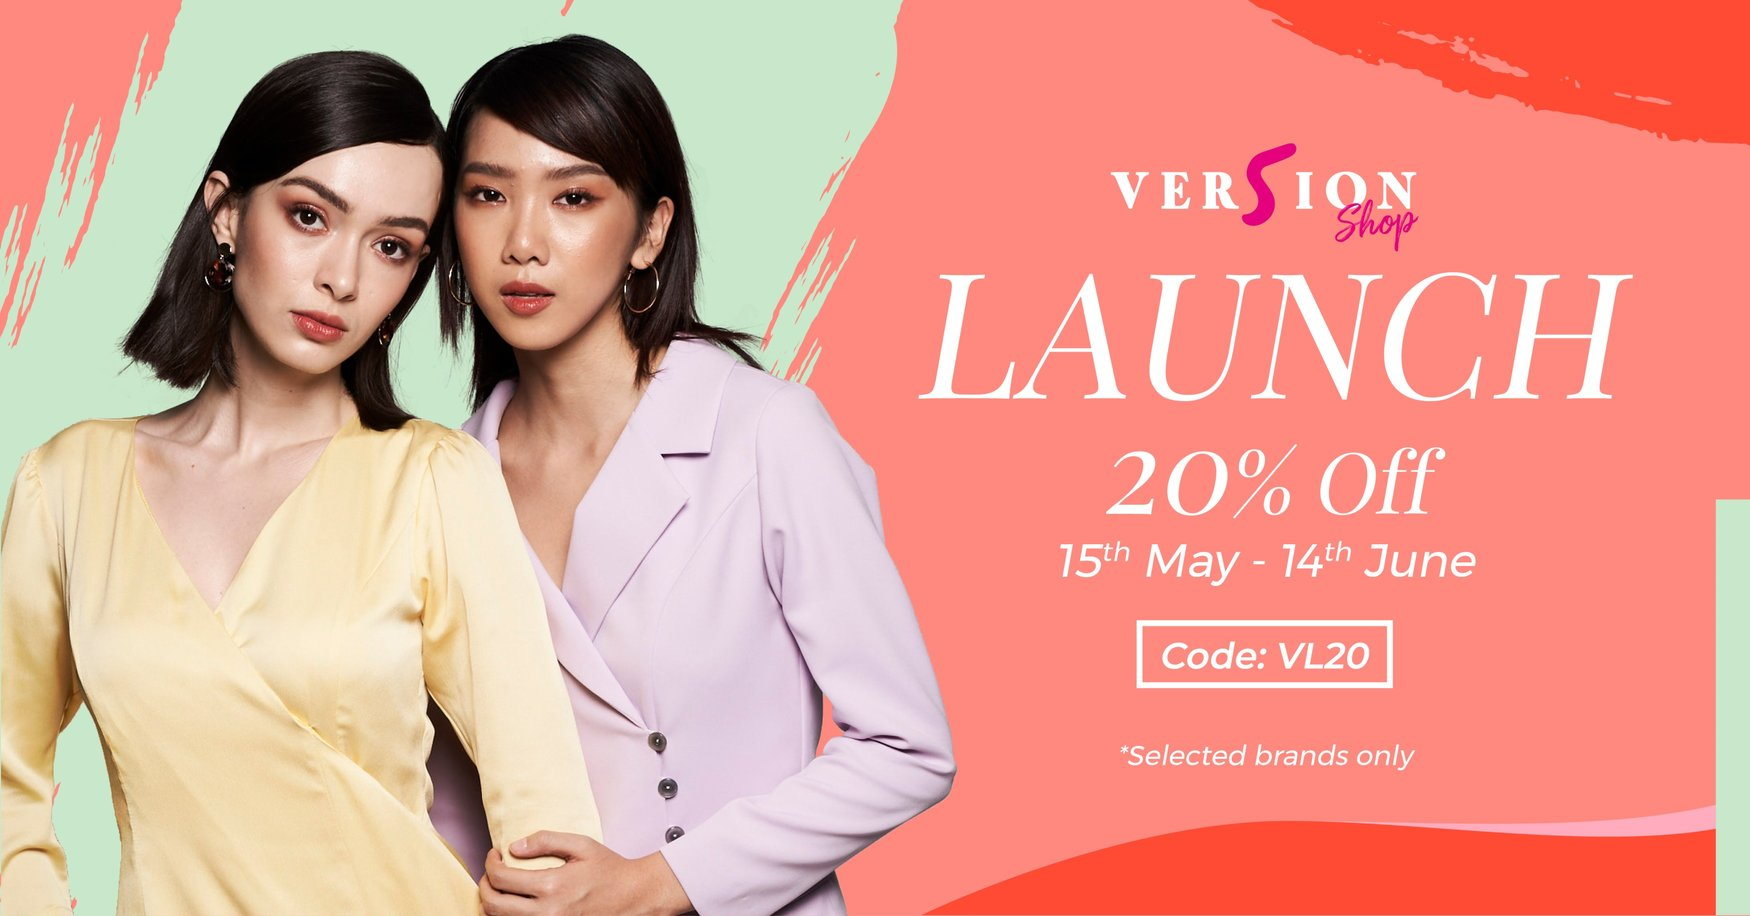 Ver5ionShop New Launch 20% OFF